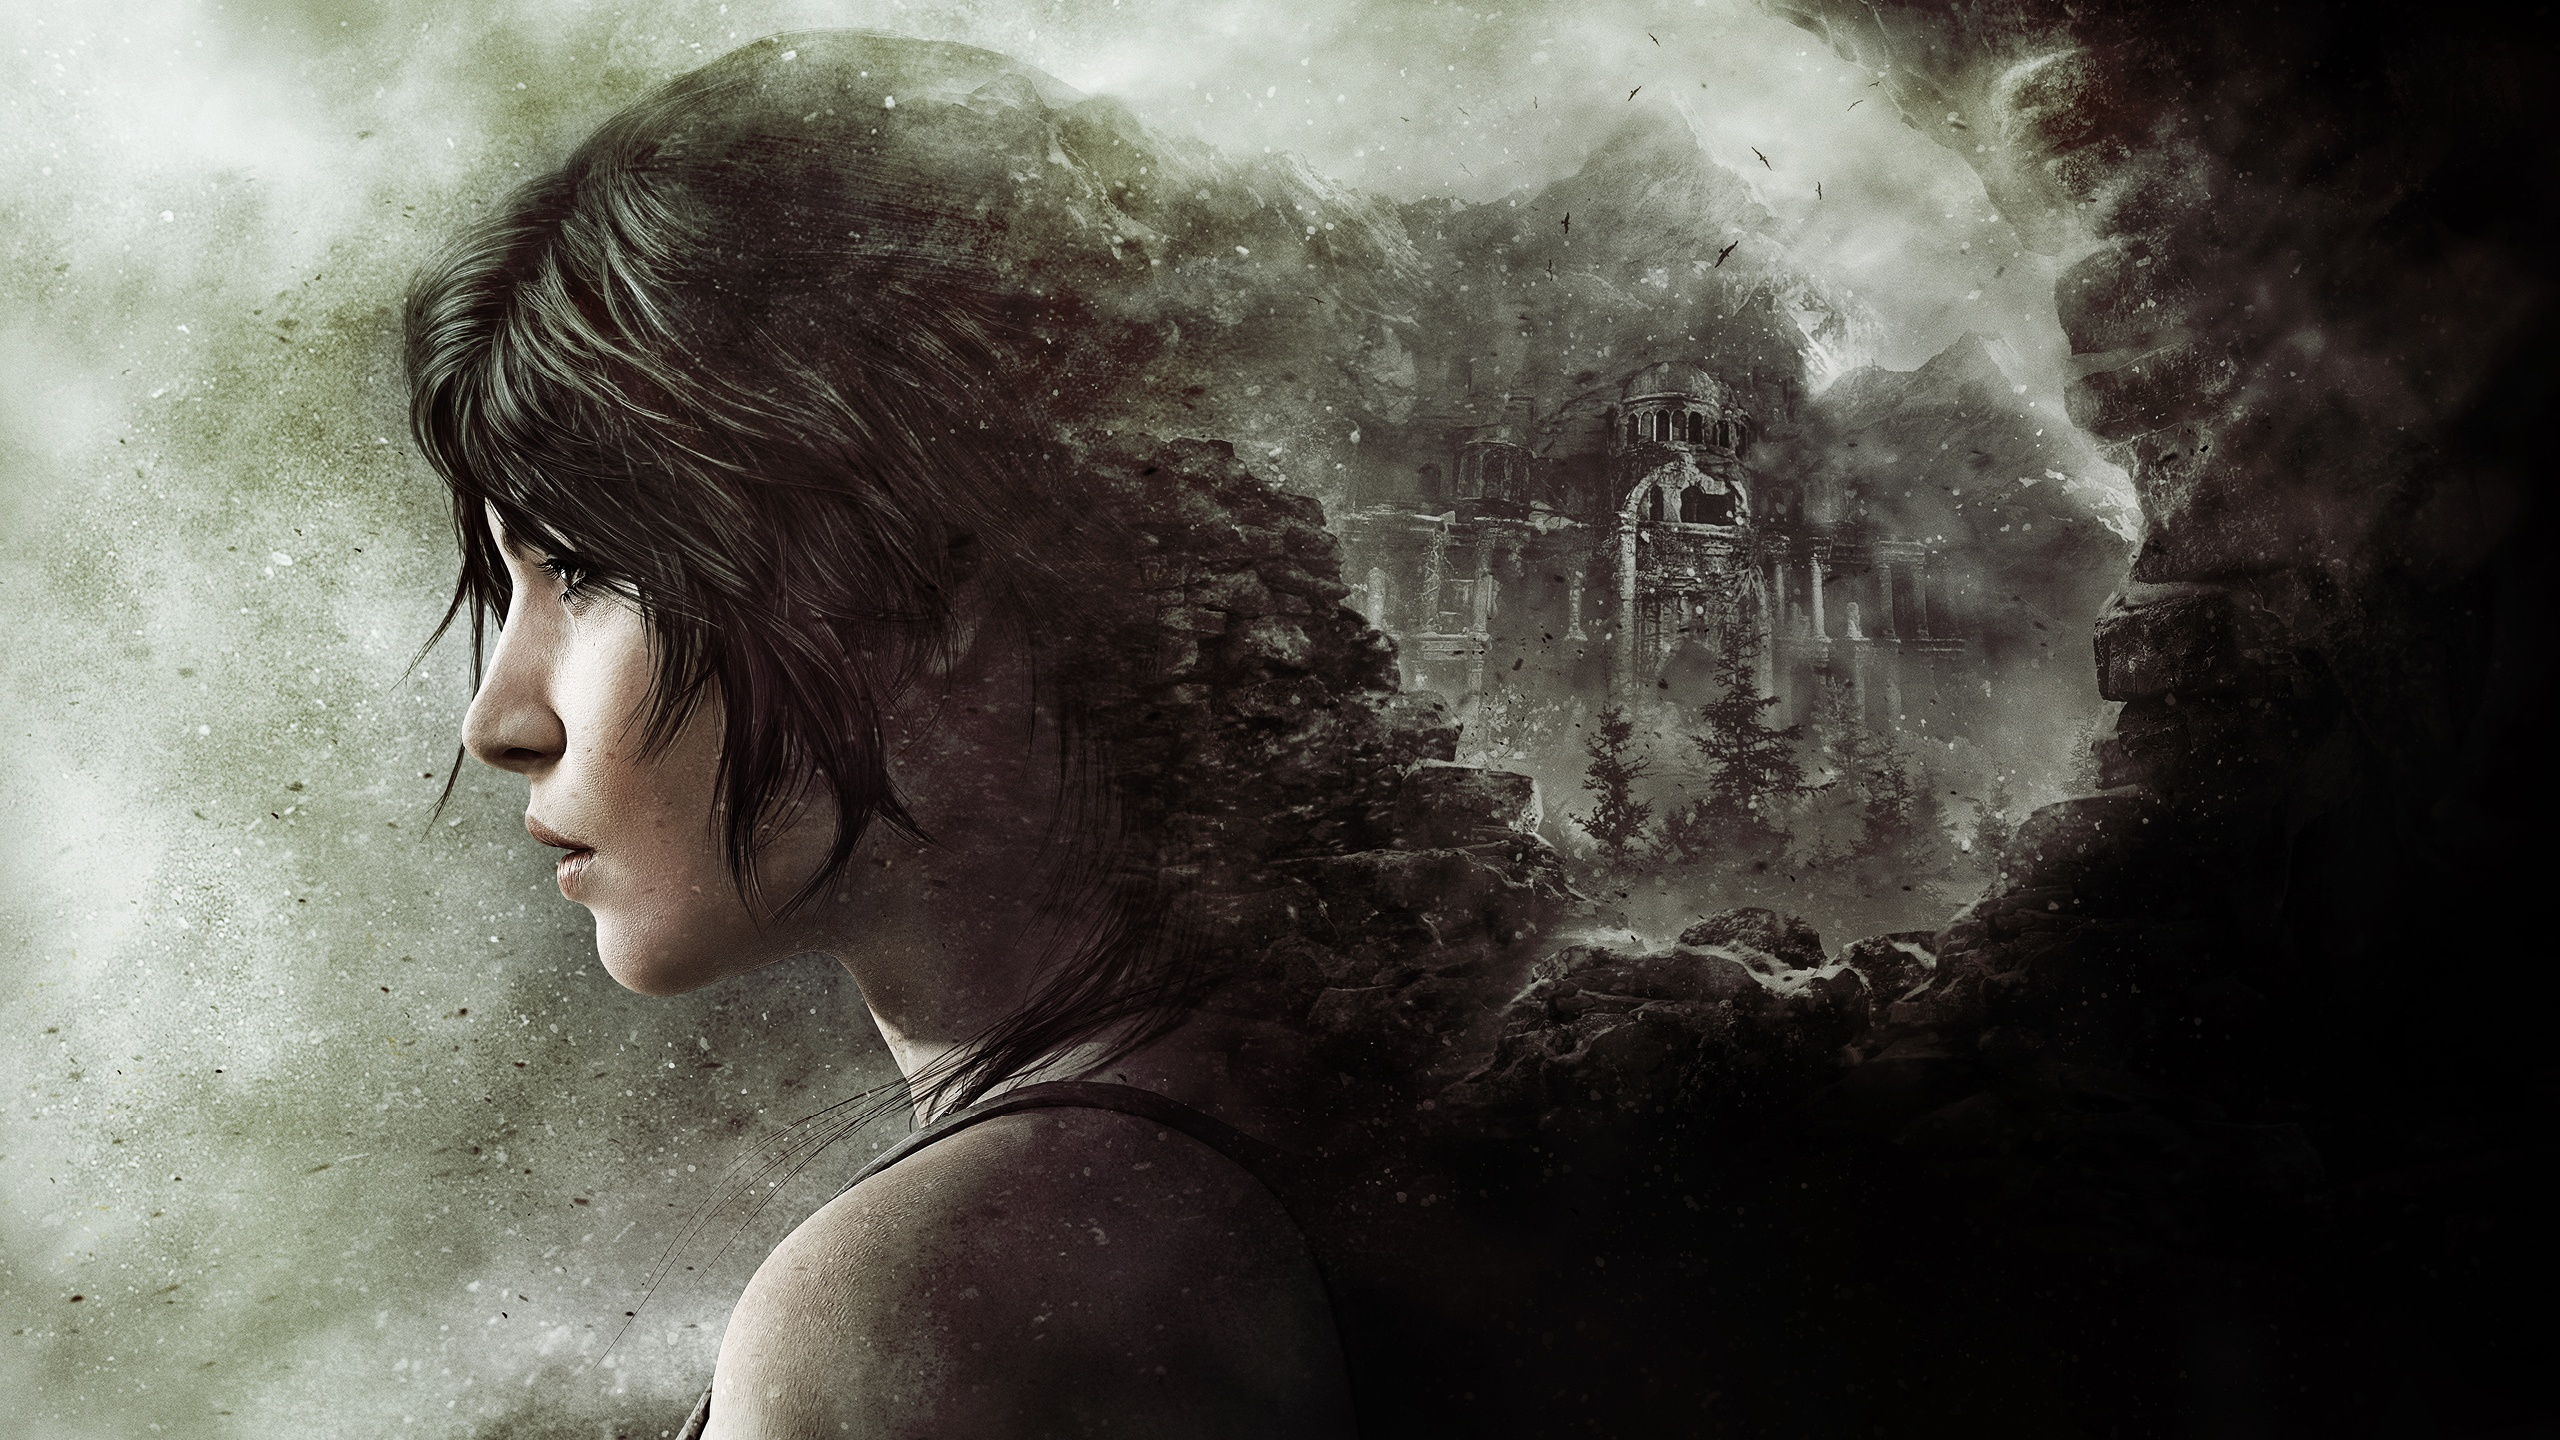 3d Animated Nature Wallpaper Free Download Rise Of The Tomb Raider Lara Croft Wallpapers In Jpg